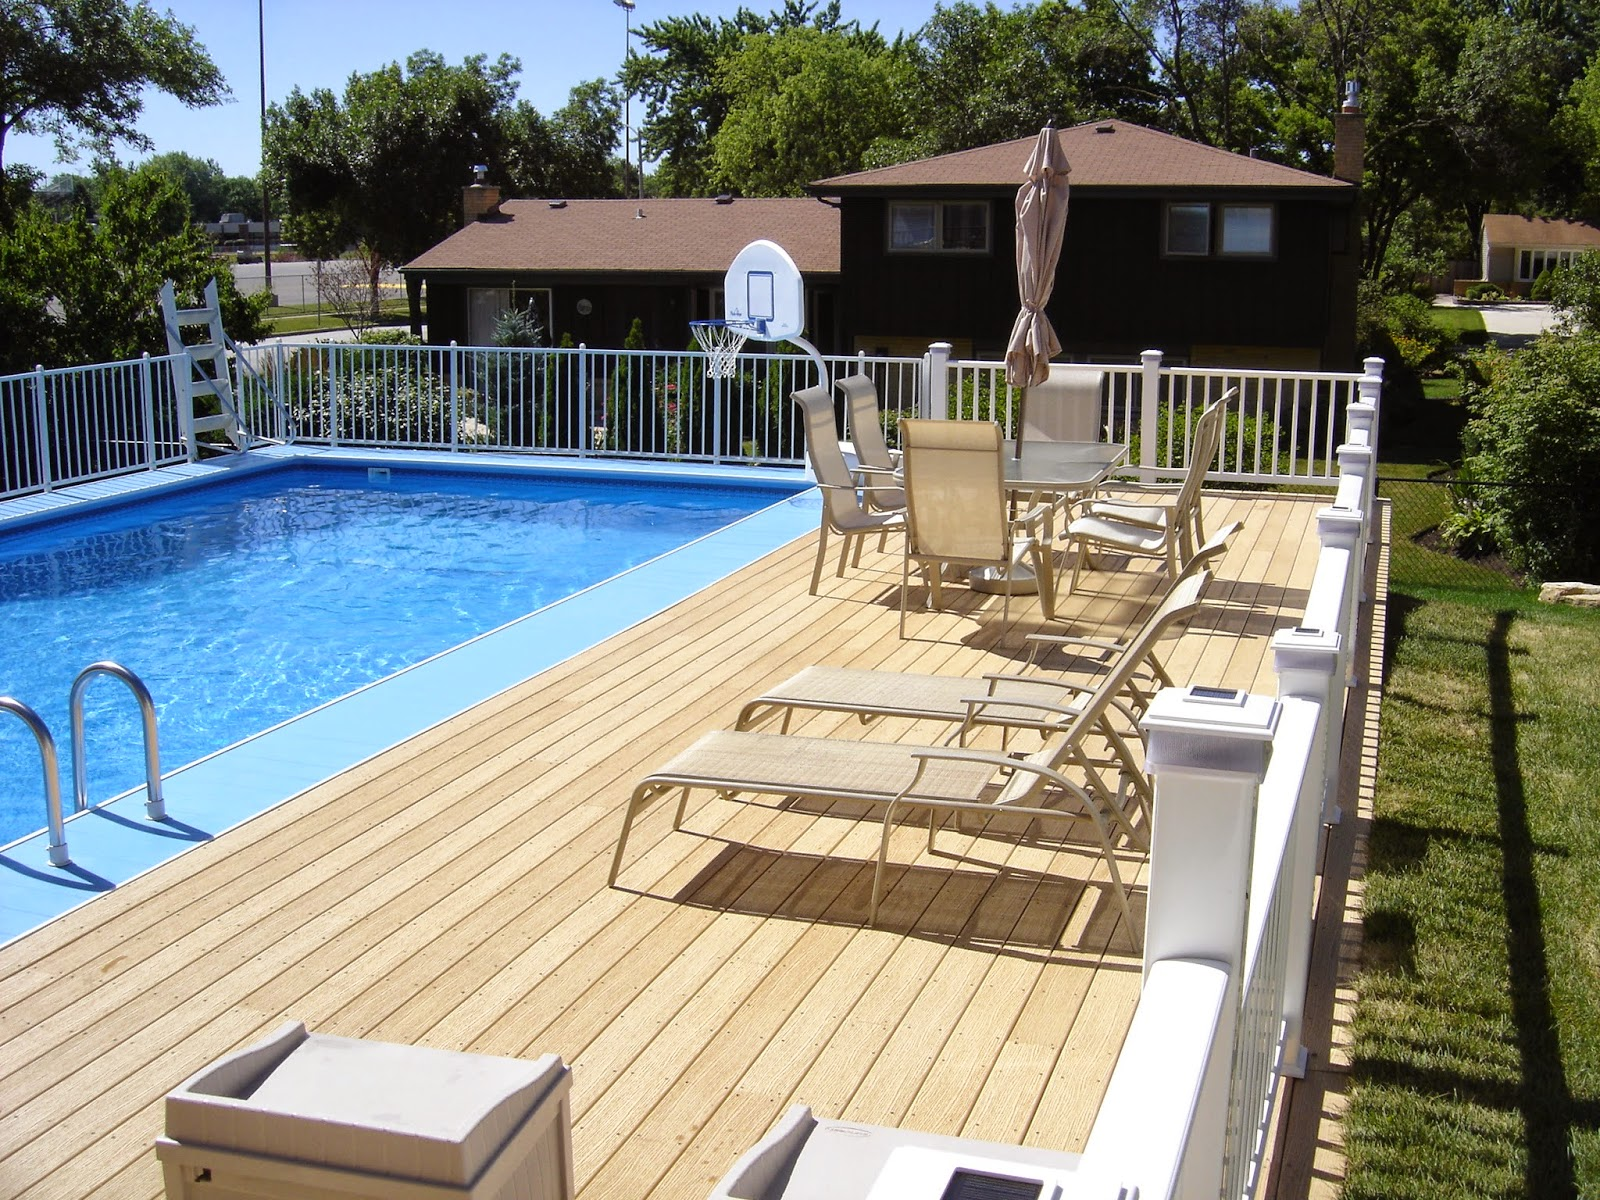 swimming pool deck ideas 15 hardwood swimming pool decks pool deck design ideas above ground pool